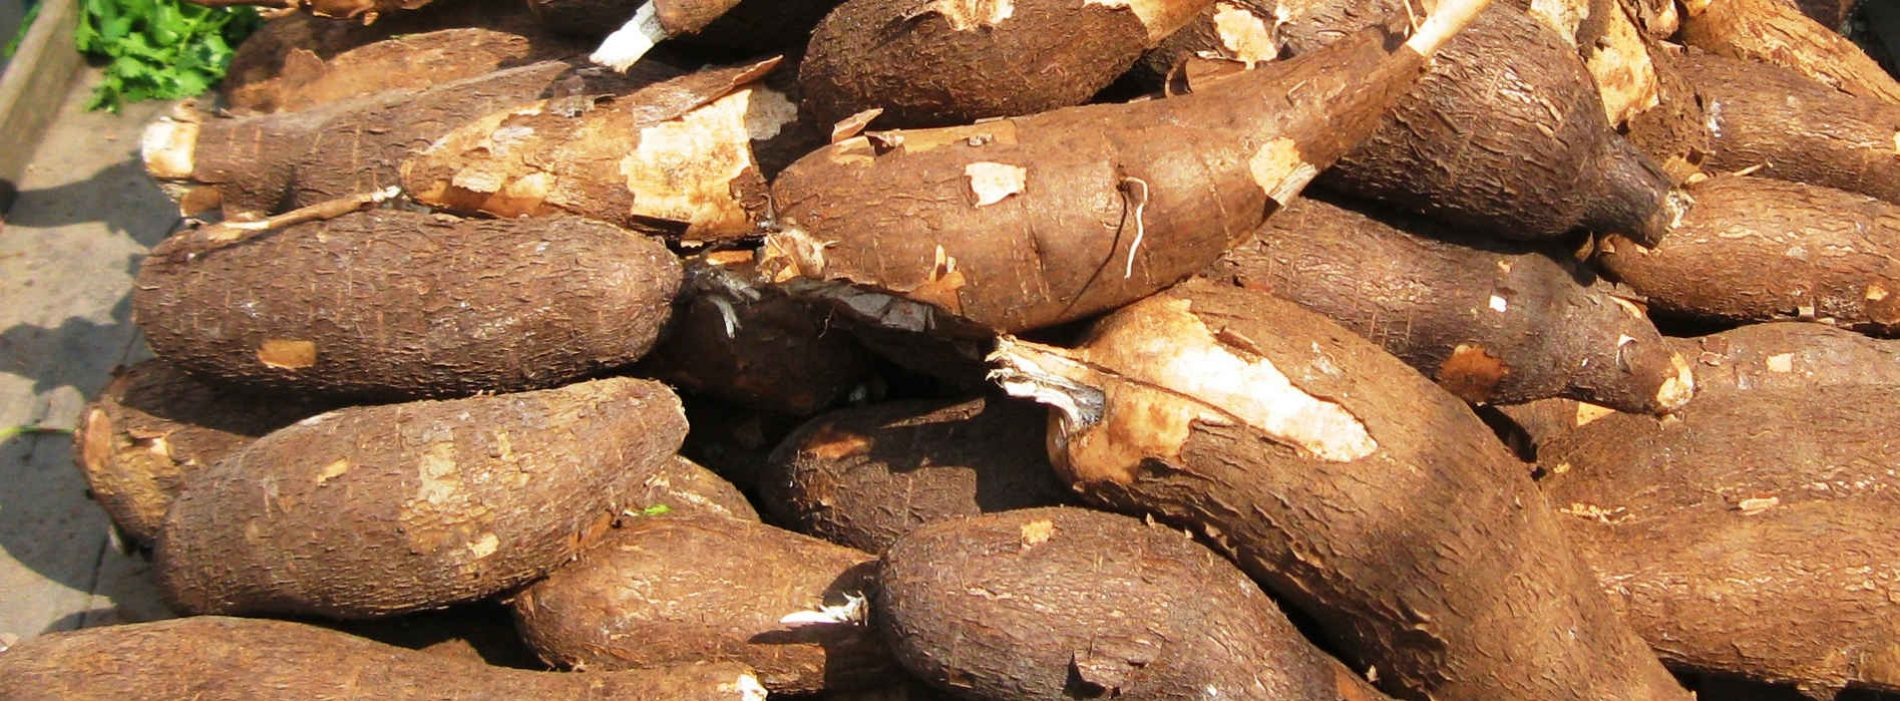 Cassava, the next premier crop